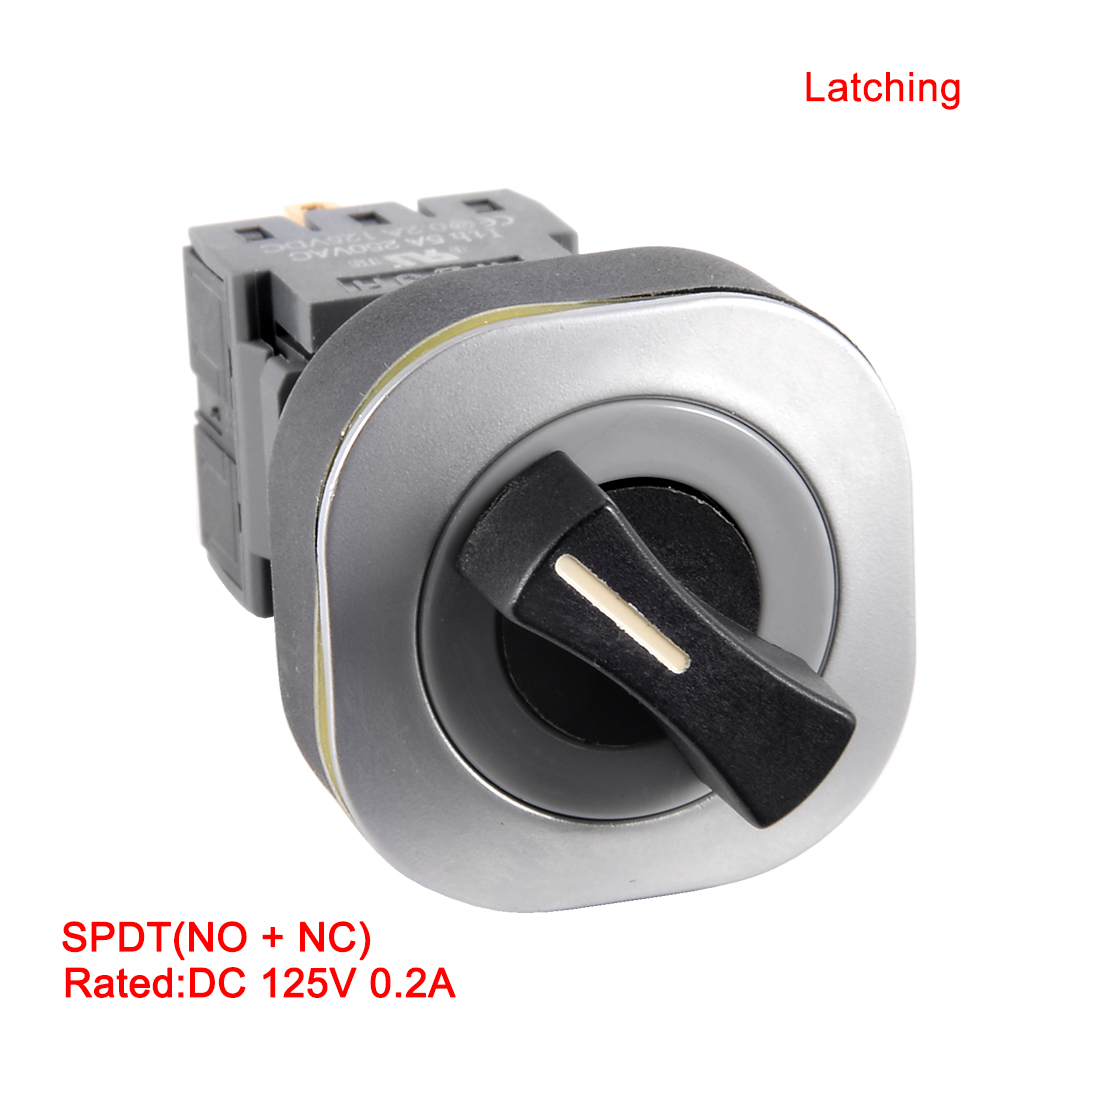 DC 125V 0.2A SPDT 4P NO+NC ON/OFF Rotary Rectangle LatchingSelector Switch - image 1 of 7